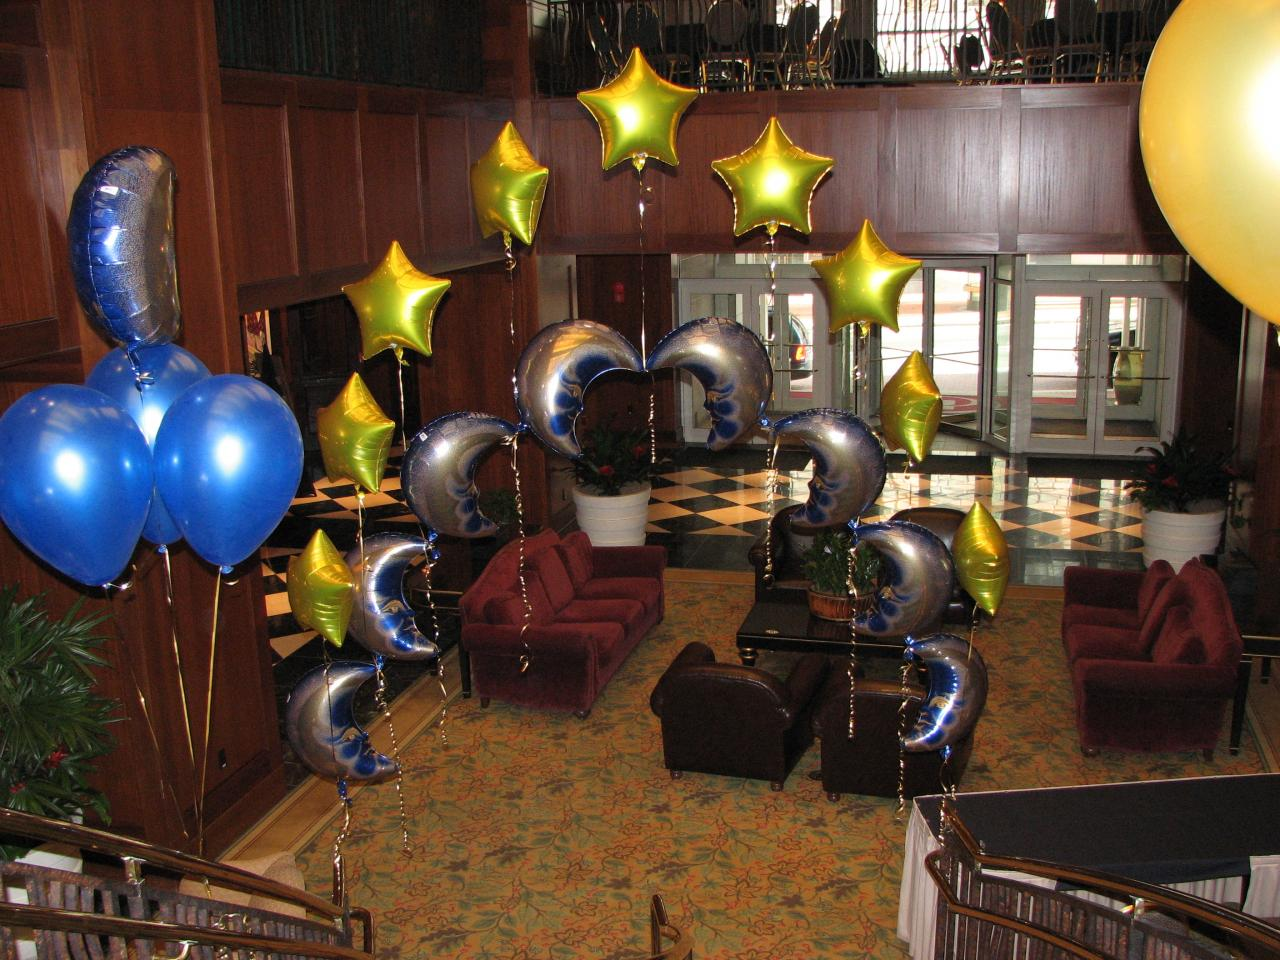 Bouquets Balloons New Years Decorations Ballons